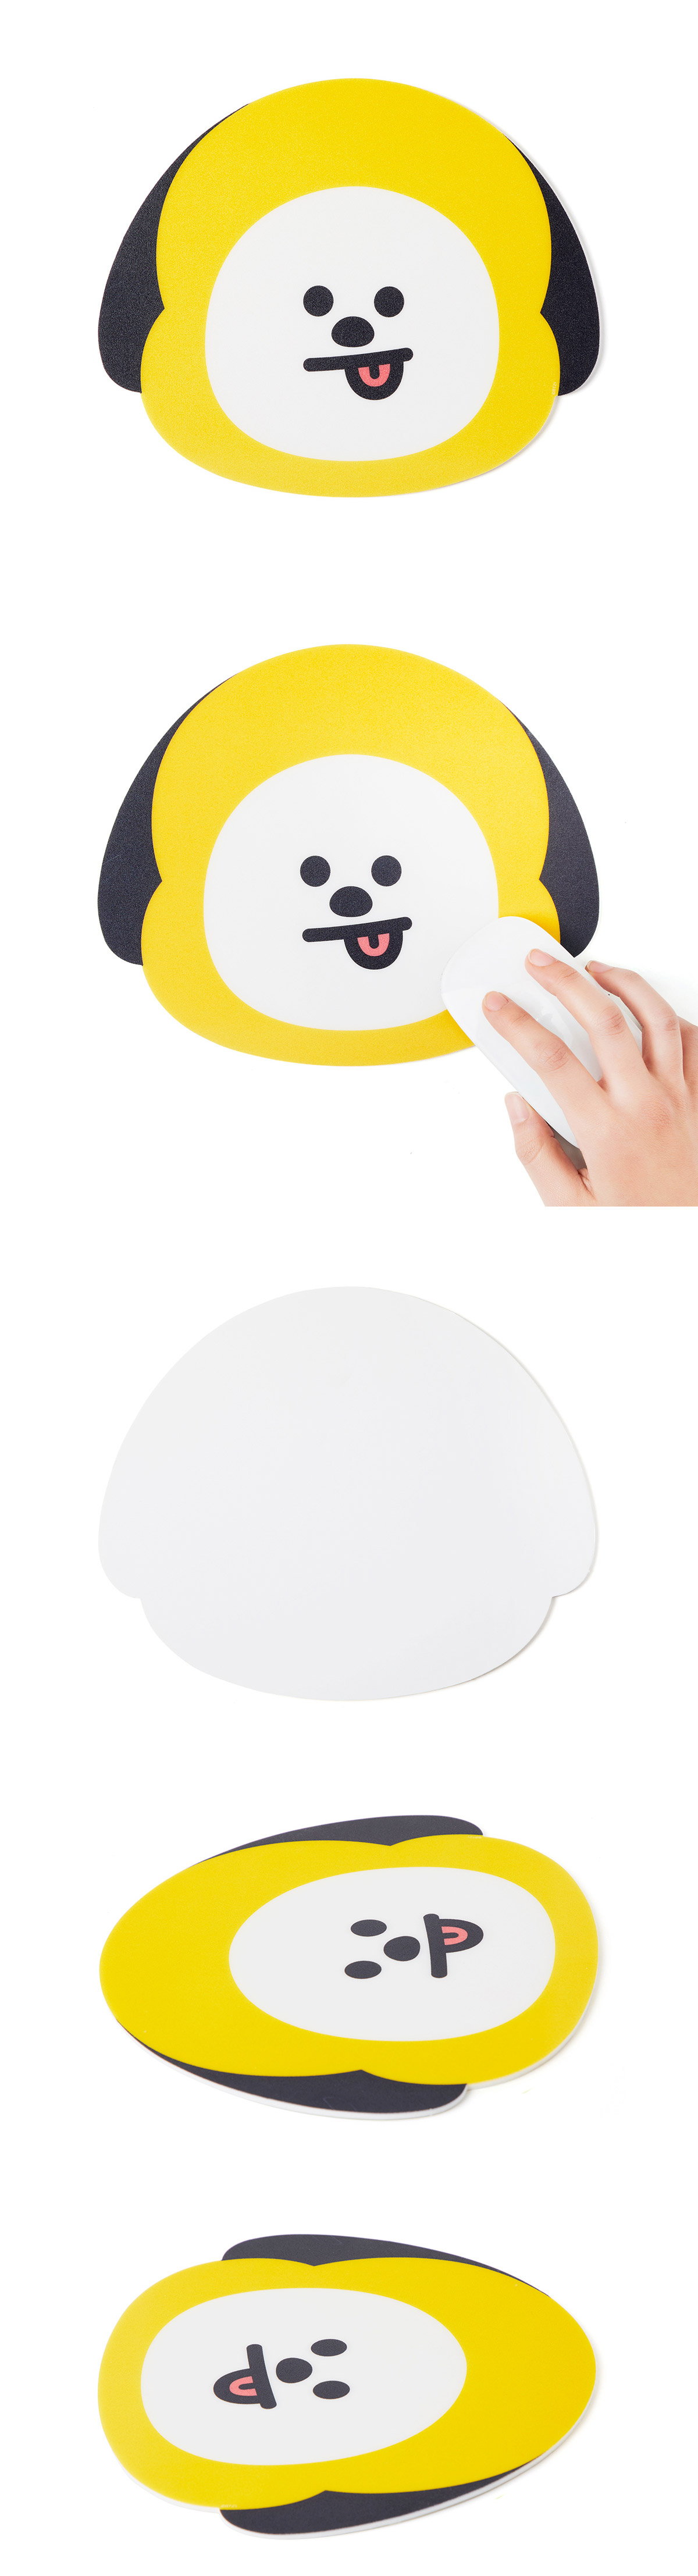 bt21_mousepad_03.jpg